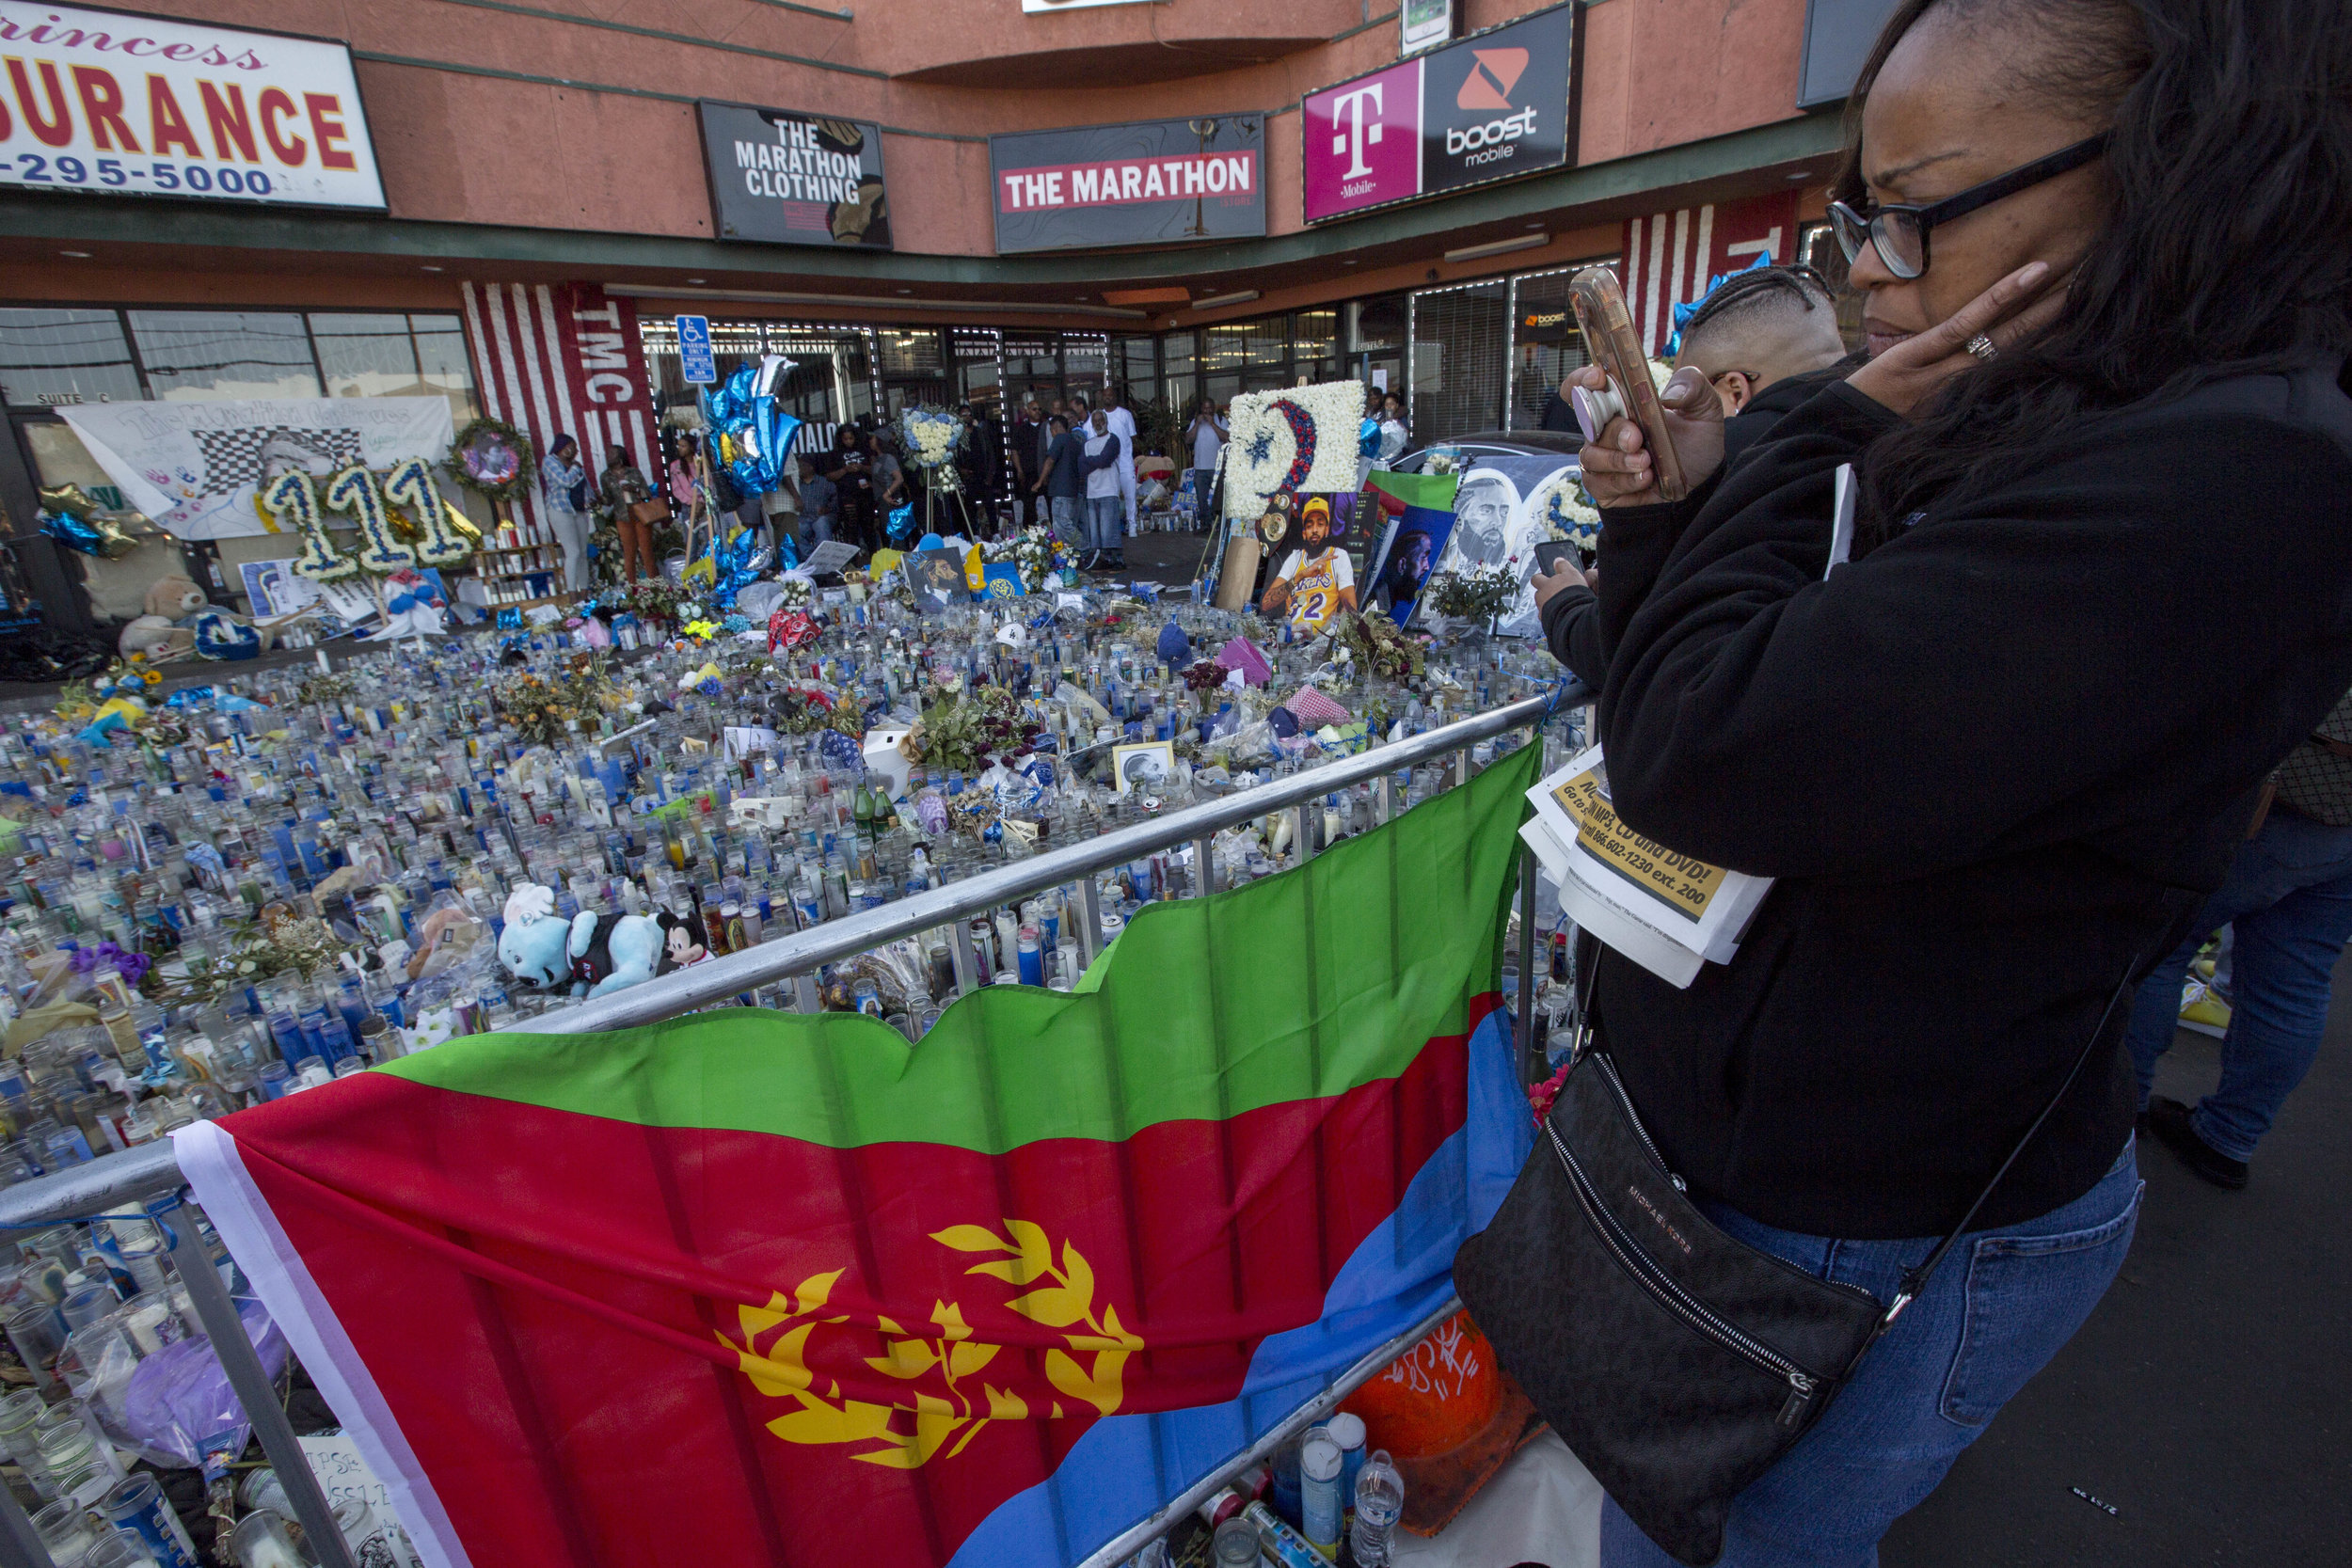 A woman takes a photo of Nipsey Hussle's memorial at The Marathon Clothing store on Slauson Avenue in Los Angeles, California on Wednesday, April 10, 2019. The 33-year-old rapper was murdered on March 31 in front of The Marathon Clothing store which he owned. (Jose Lopez)